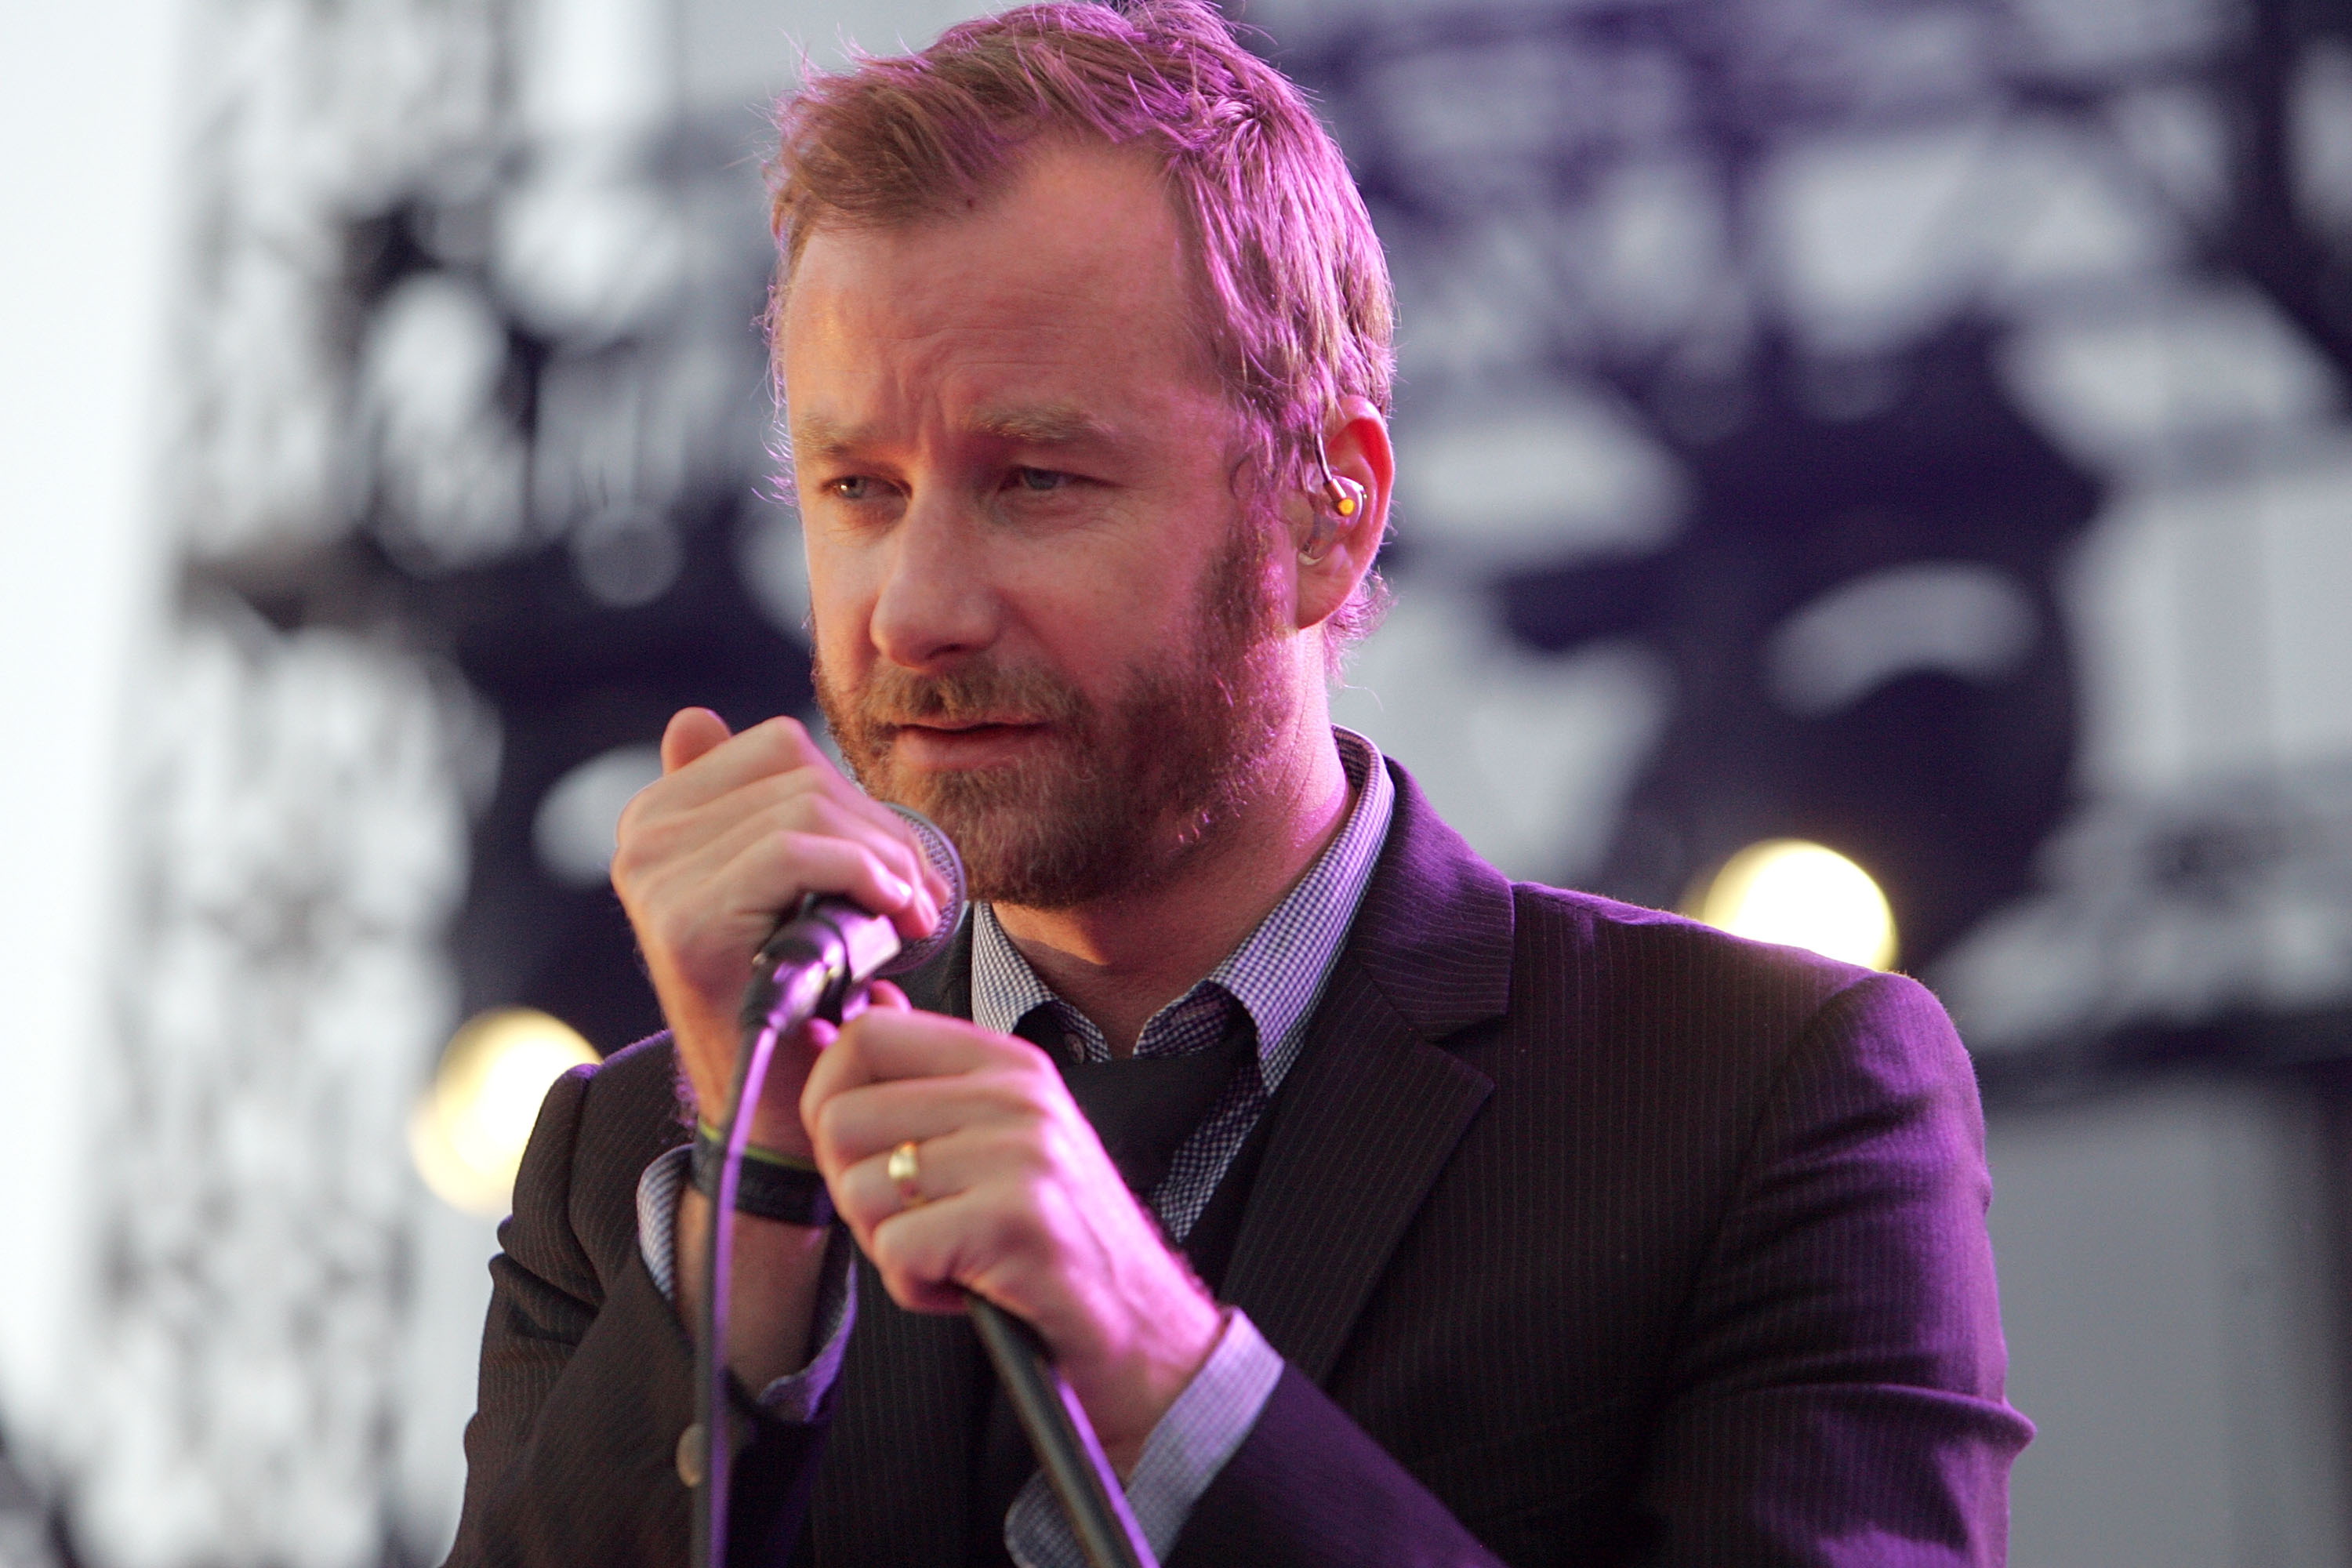 AUSTIN, TX - OCTOBER 10:  Vocalist Matt Beringer of The National performs in concert during day 3 of the Austin City Limits M